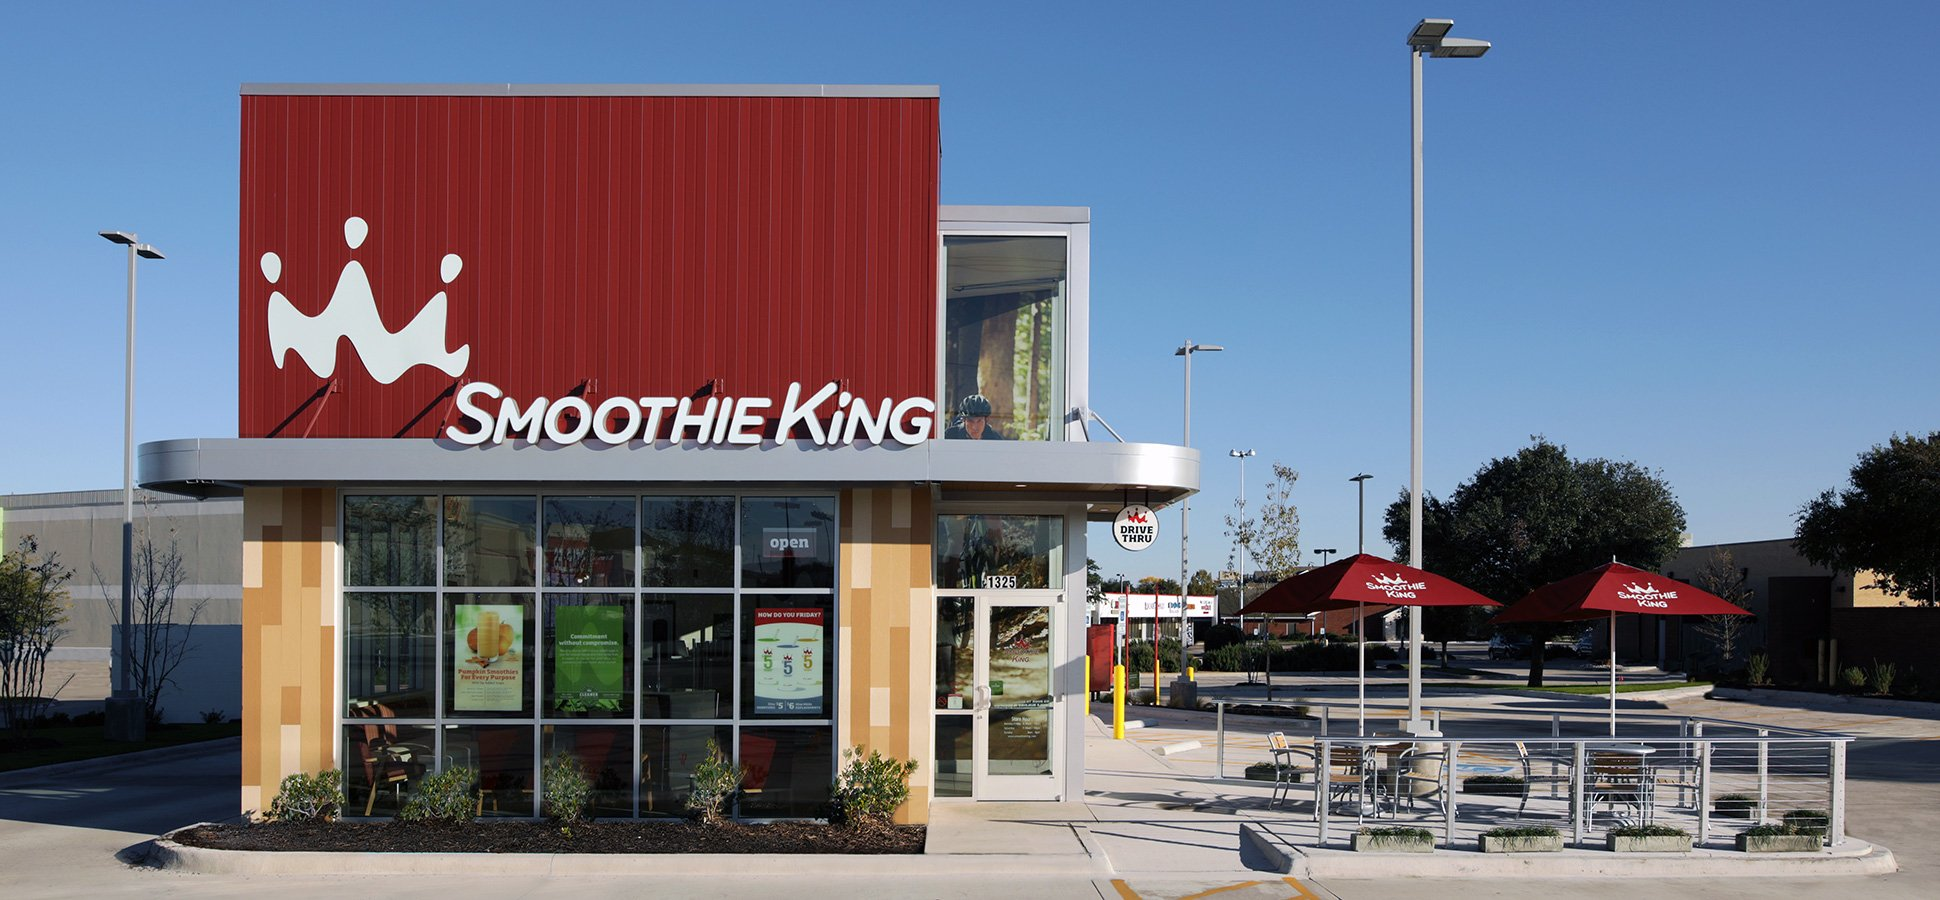 The CEO of Smoothie King Just Revealed 1 Brilliant Question That Sets His Leadership Apart From the Rest